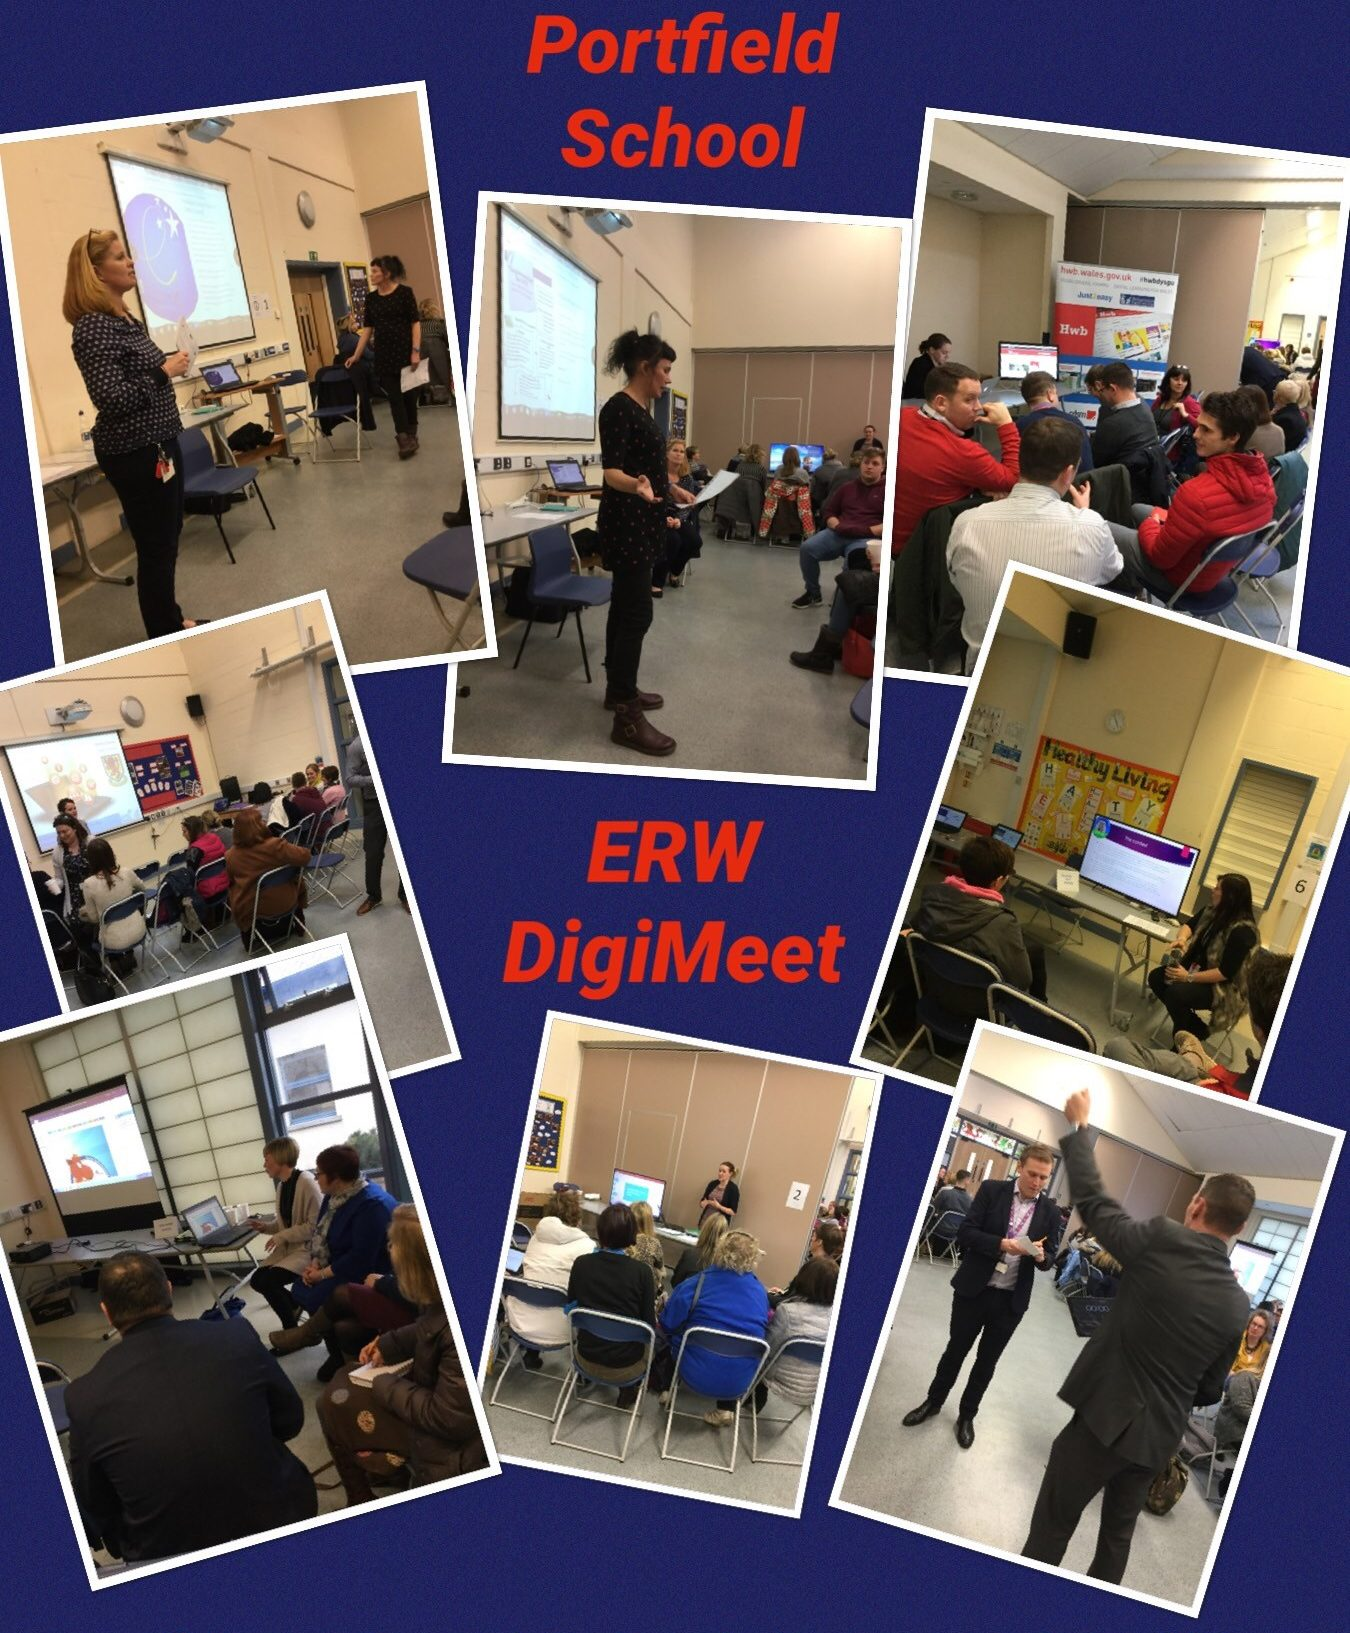 Monday 12th February Portfield School hosted the Erw DigiMeet. We had over 80 attendees who came to find out more about the Digital Competence Framework. There were six workshops with presentations on HWB, internet Safety, One Note, DC in the Foundation Phase, Scratch and The Implementation of the DCF.